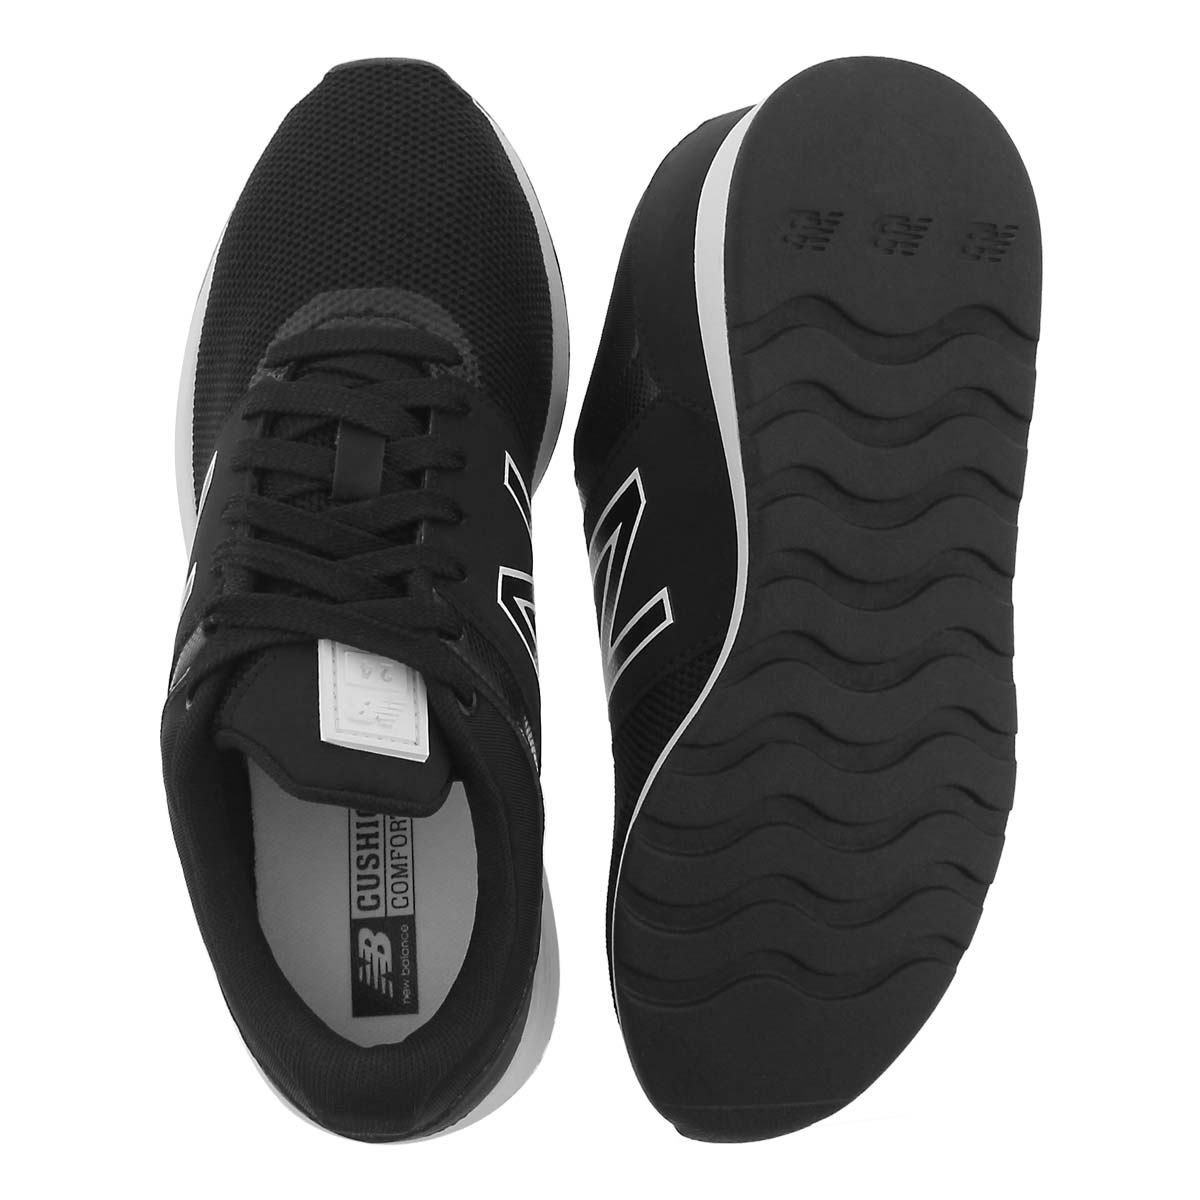 Lds 24 black/white lace up sneaker